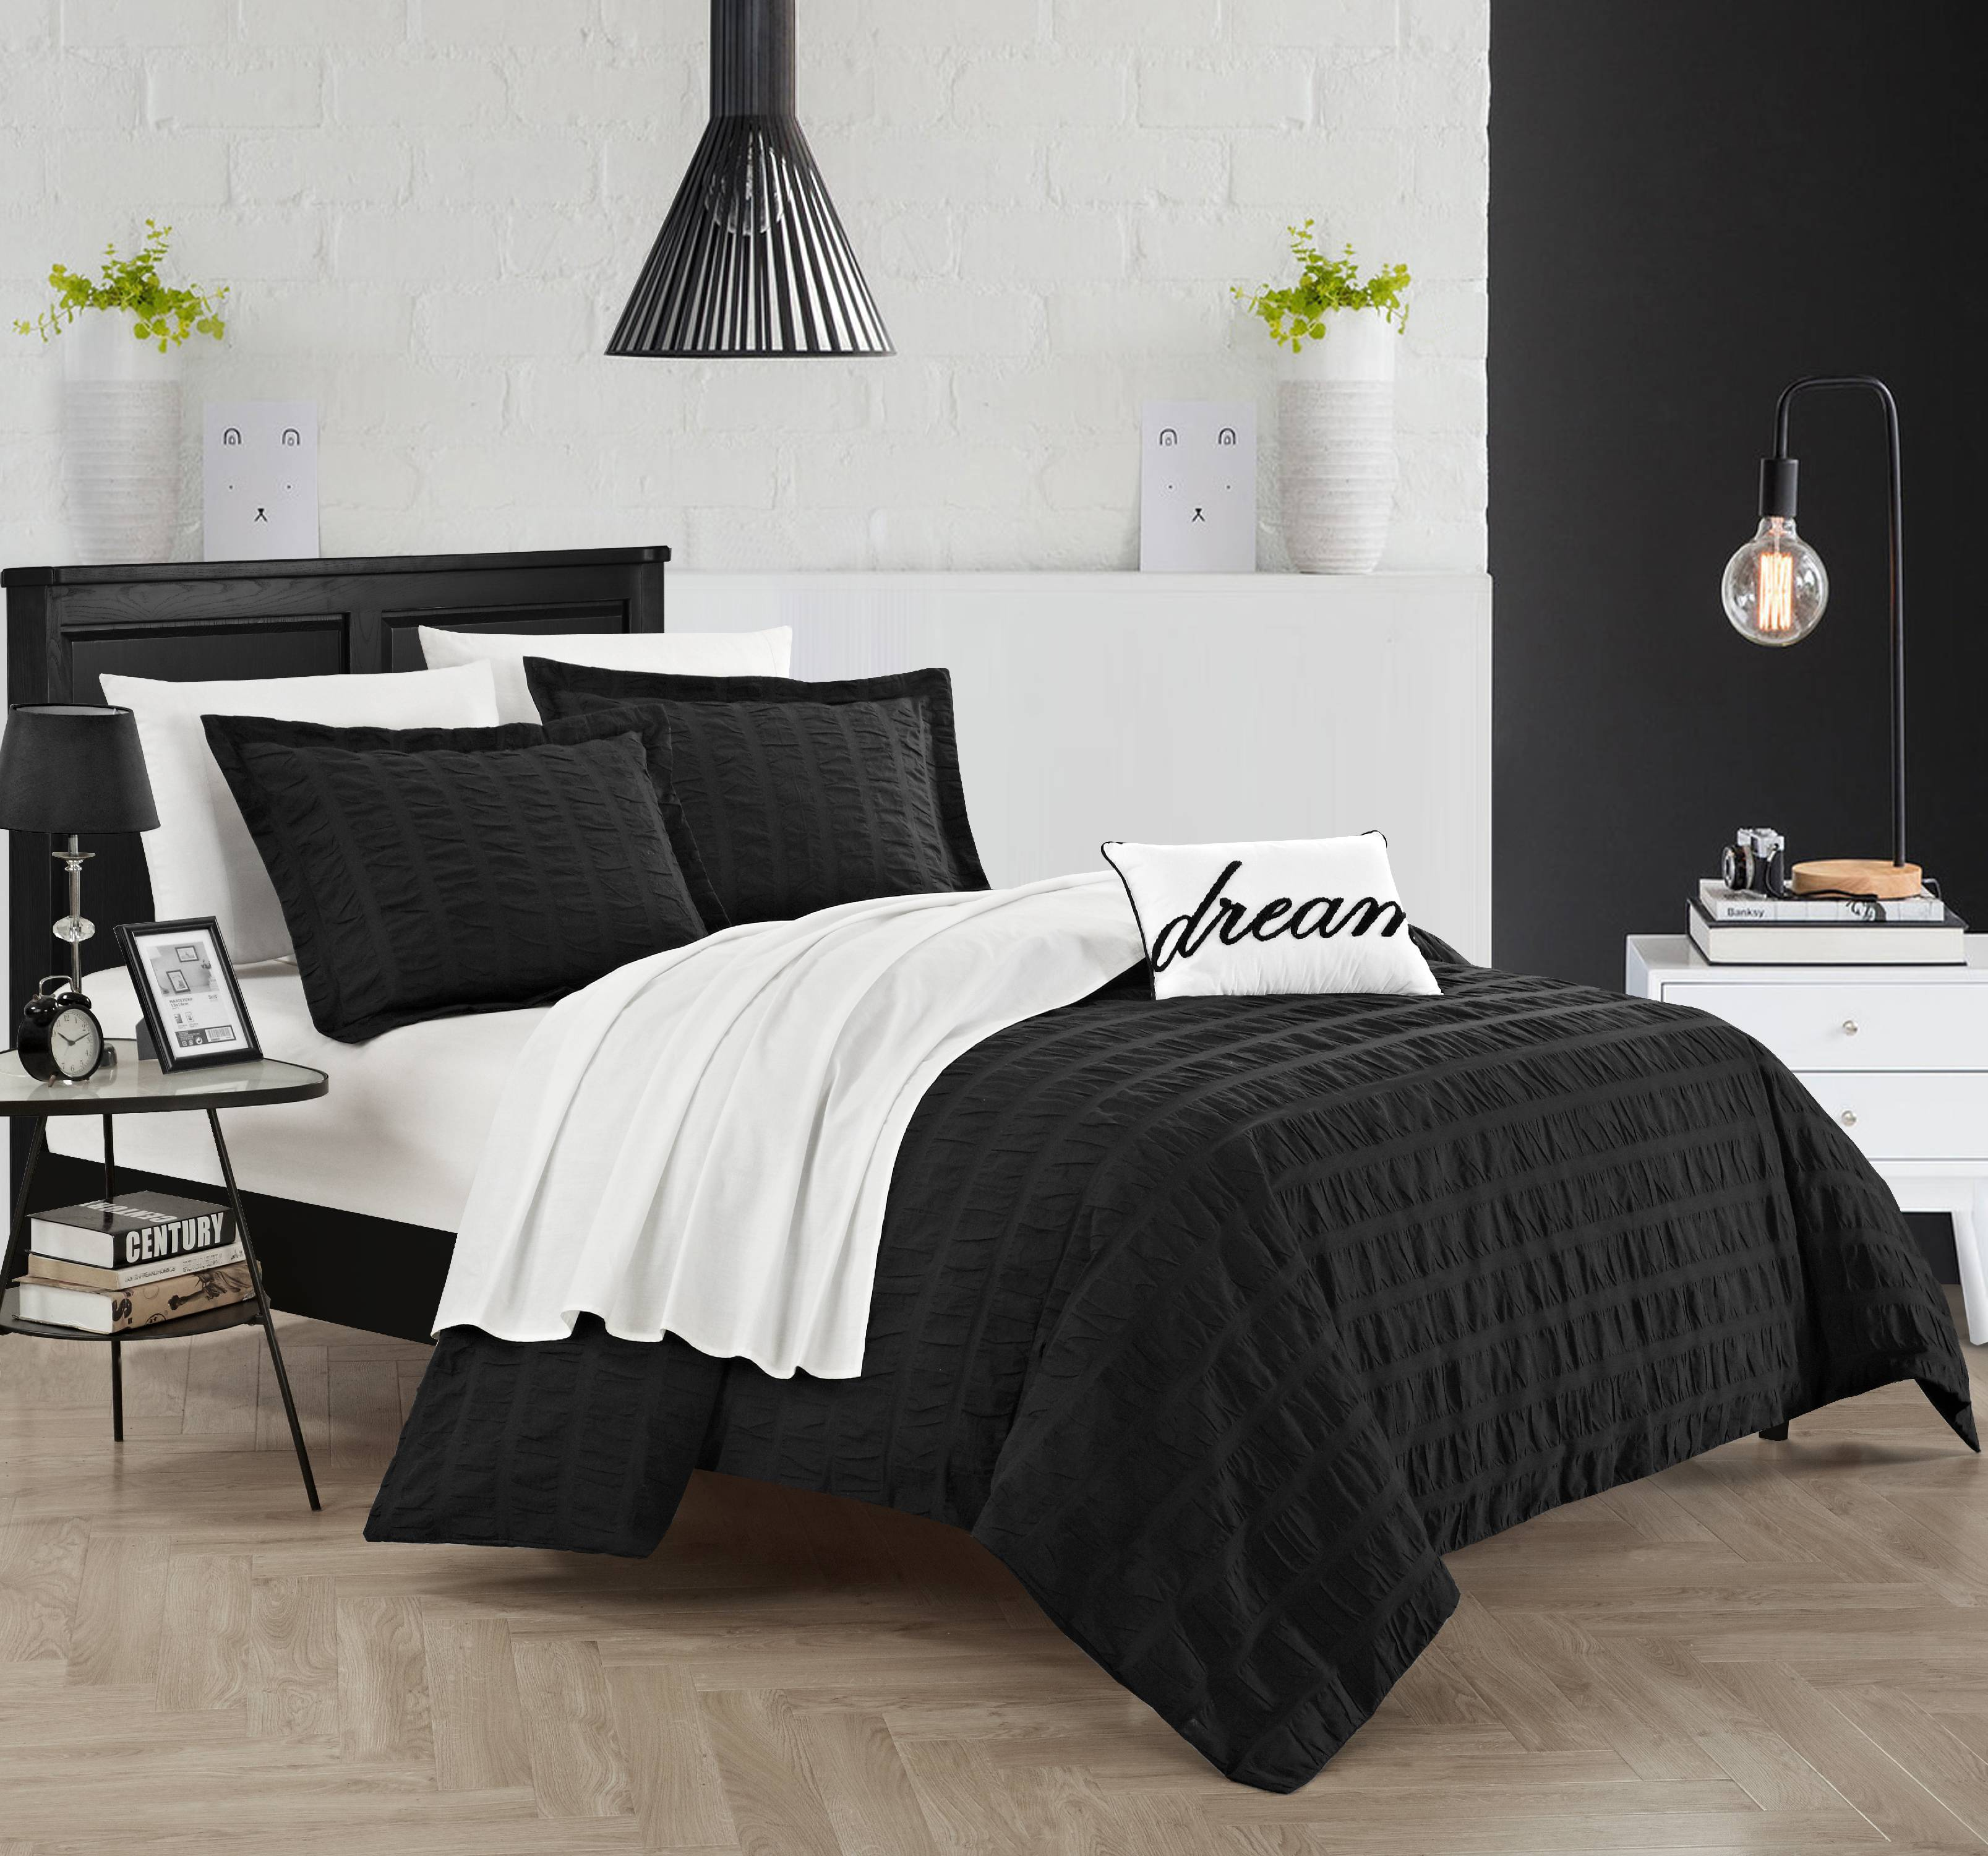 Chic Home Tornio 4 Piece Duvet Cover Set 100% Cotton Ruched Ruffled Striped Design Zipper Closure Bedding with Terry Embroidered Decorative Pillow and Shams Included